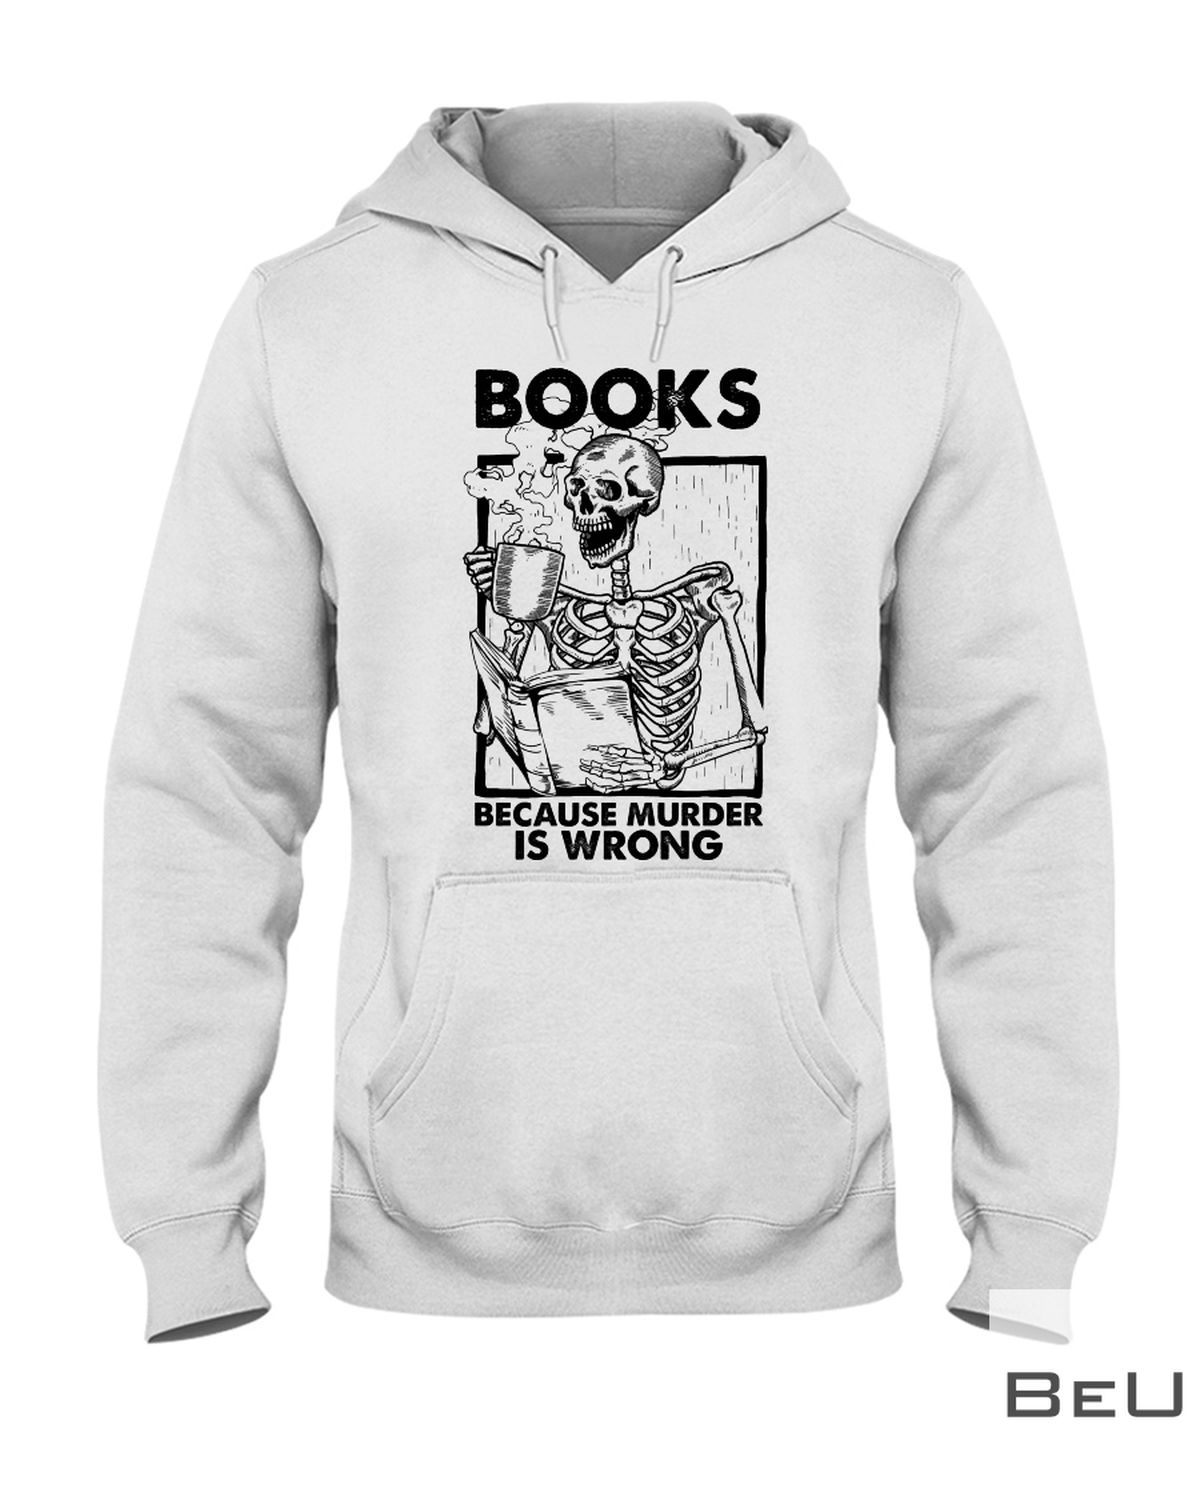 Books Because Murder Is Wrong Shirtx